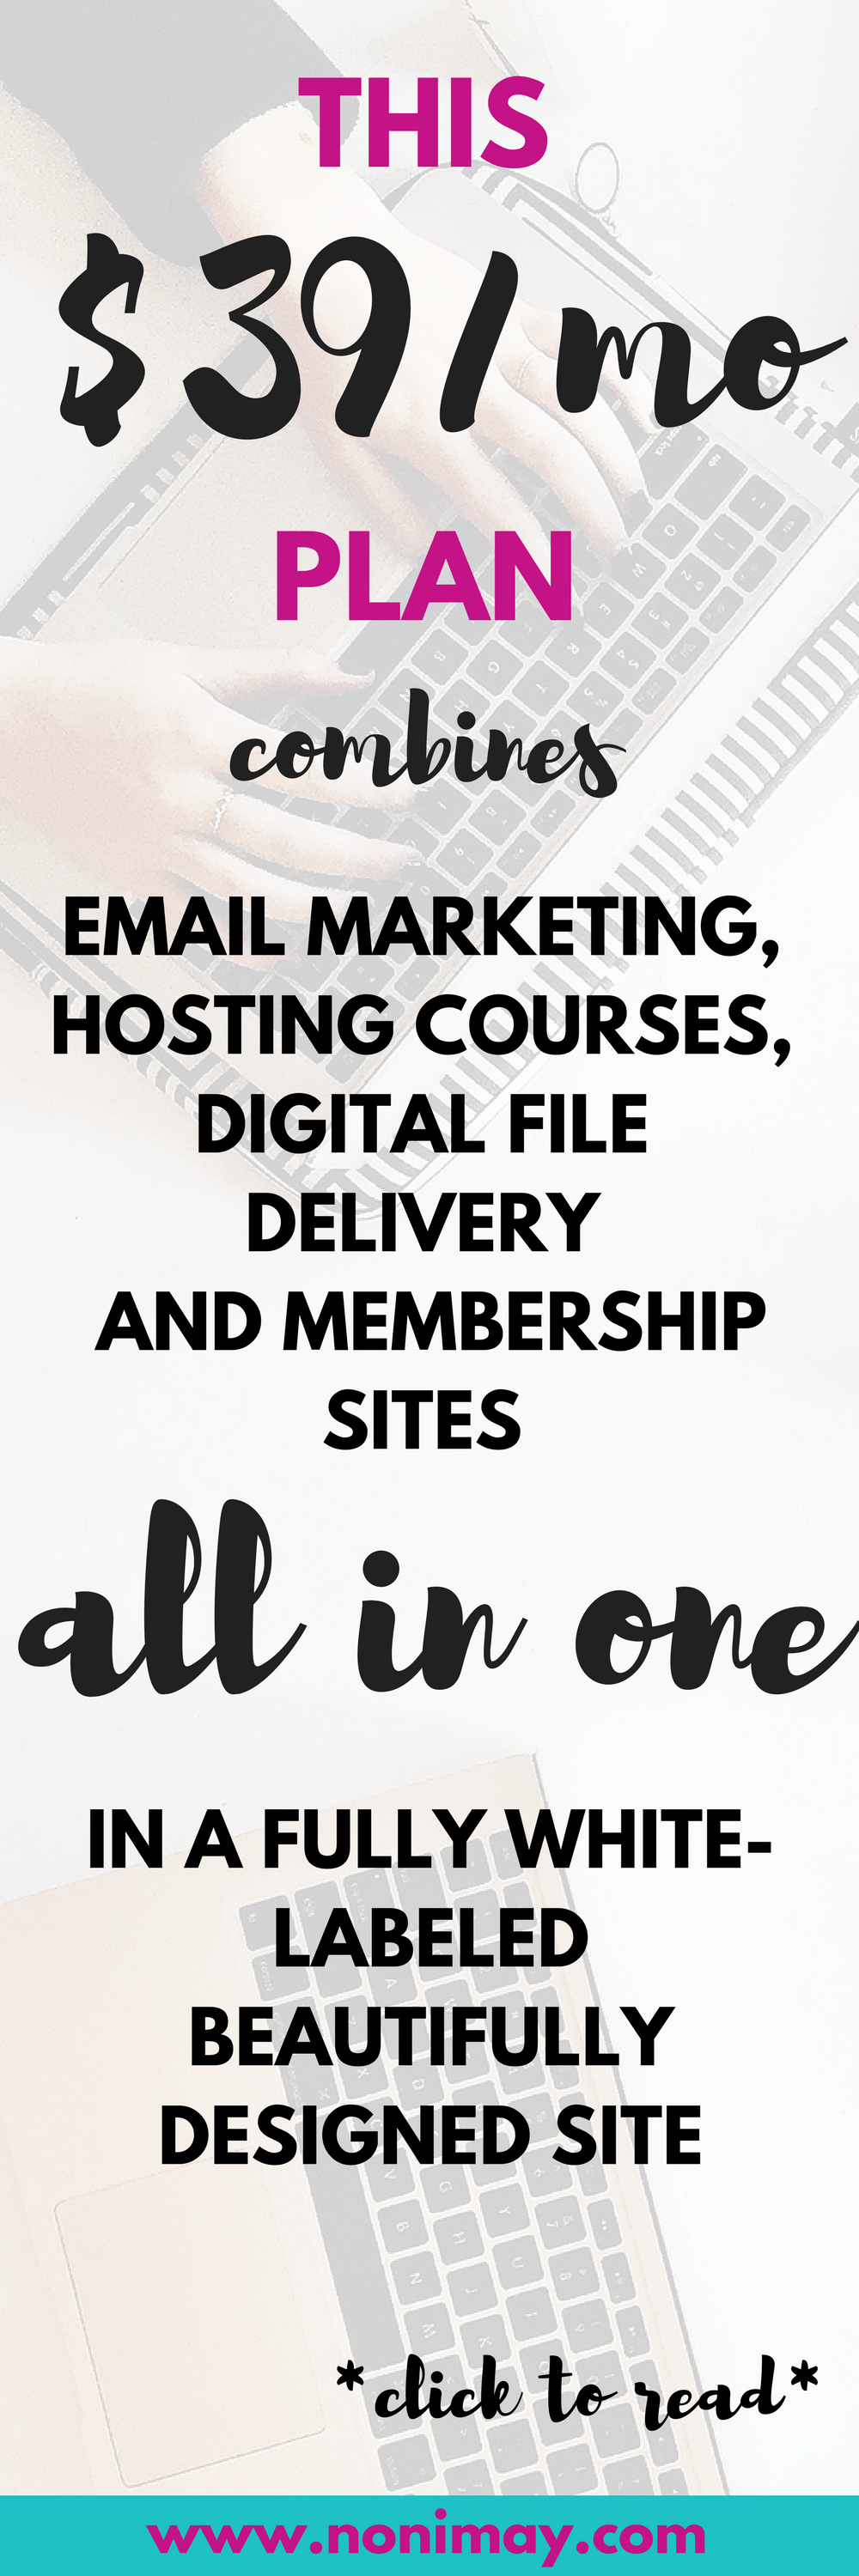 This $39 a month plan combines email marketing, hosting courses, digital file delivery and membership sites all in one in a fully white labeled beautifully designed site